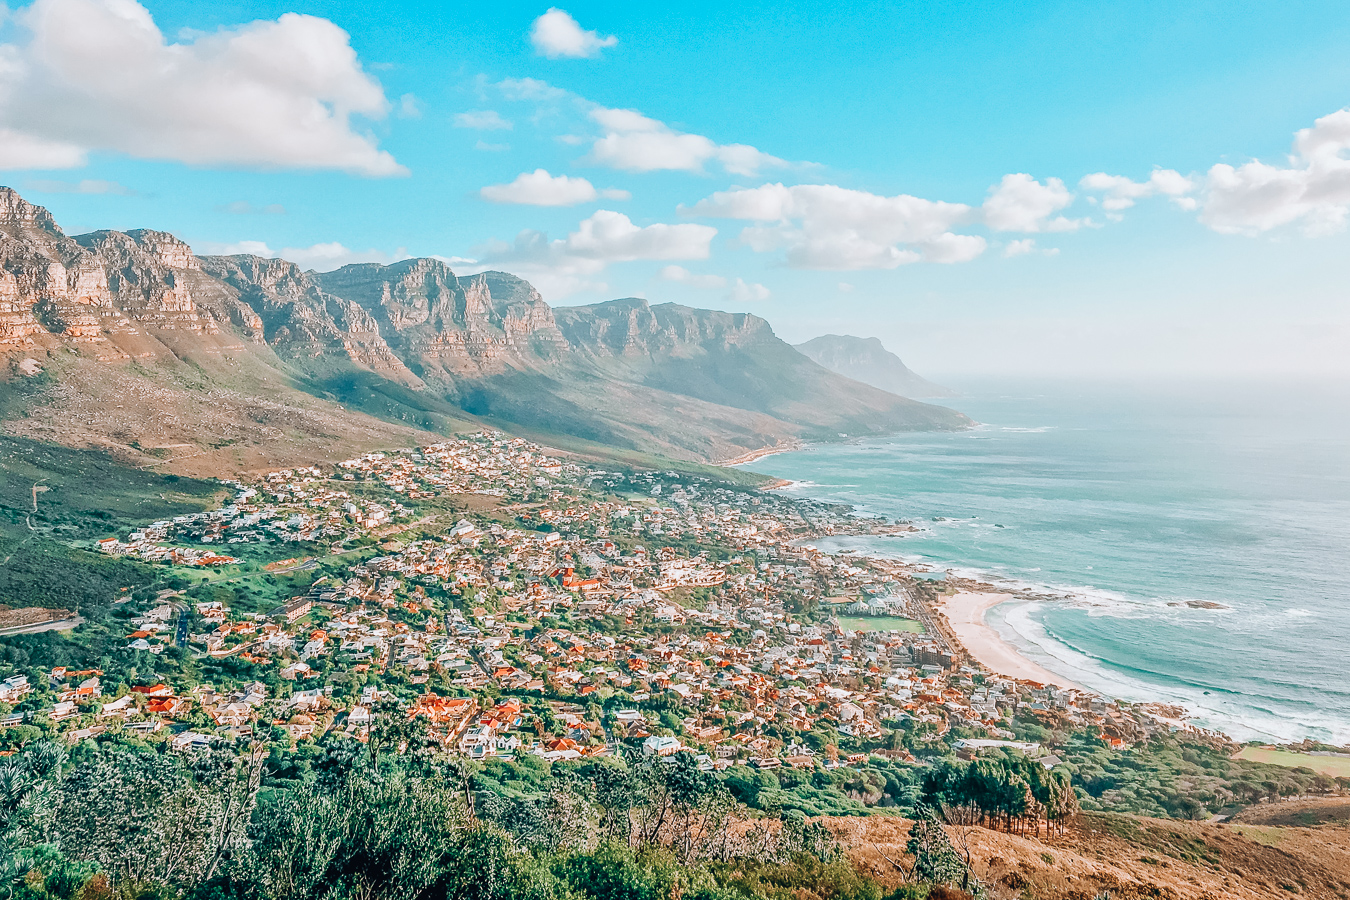 Viewpoint in South Africa